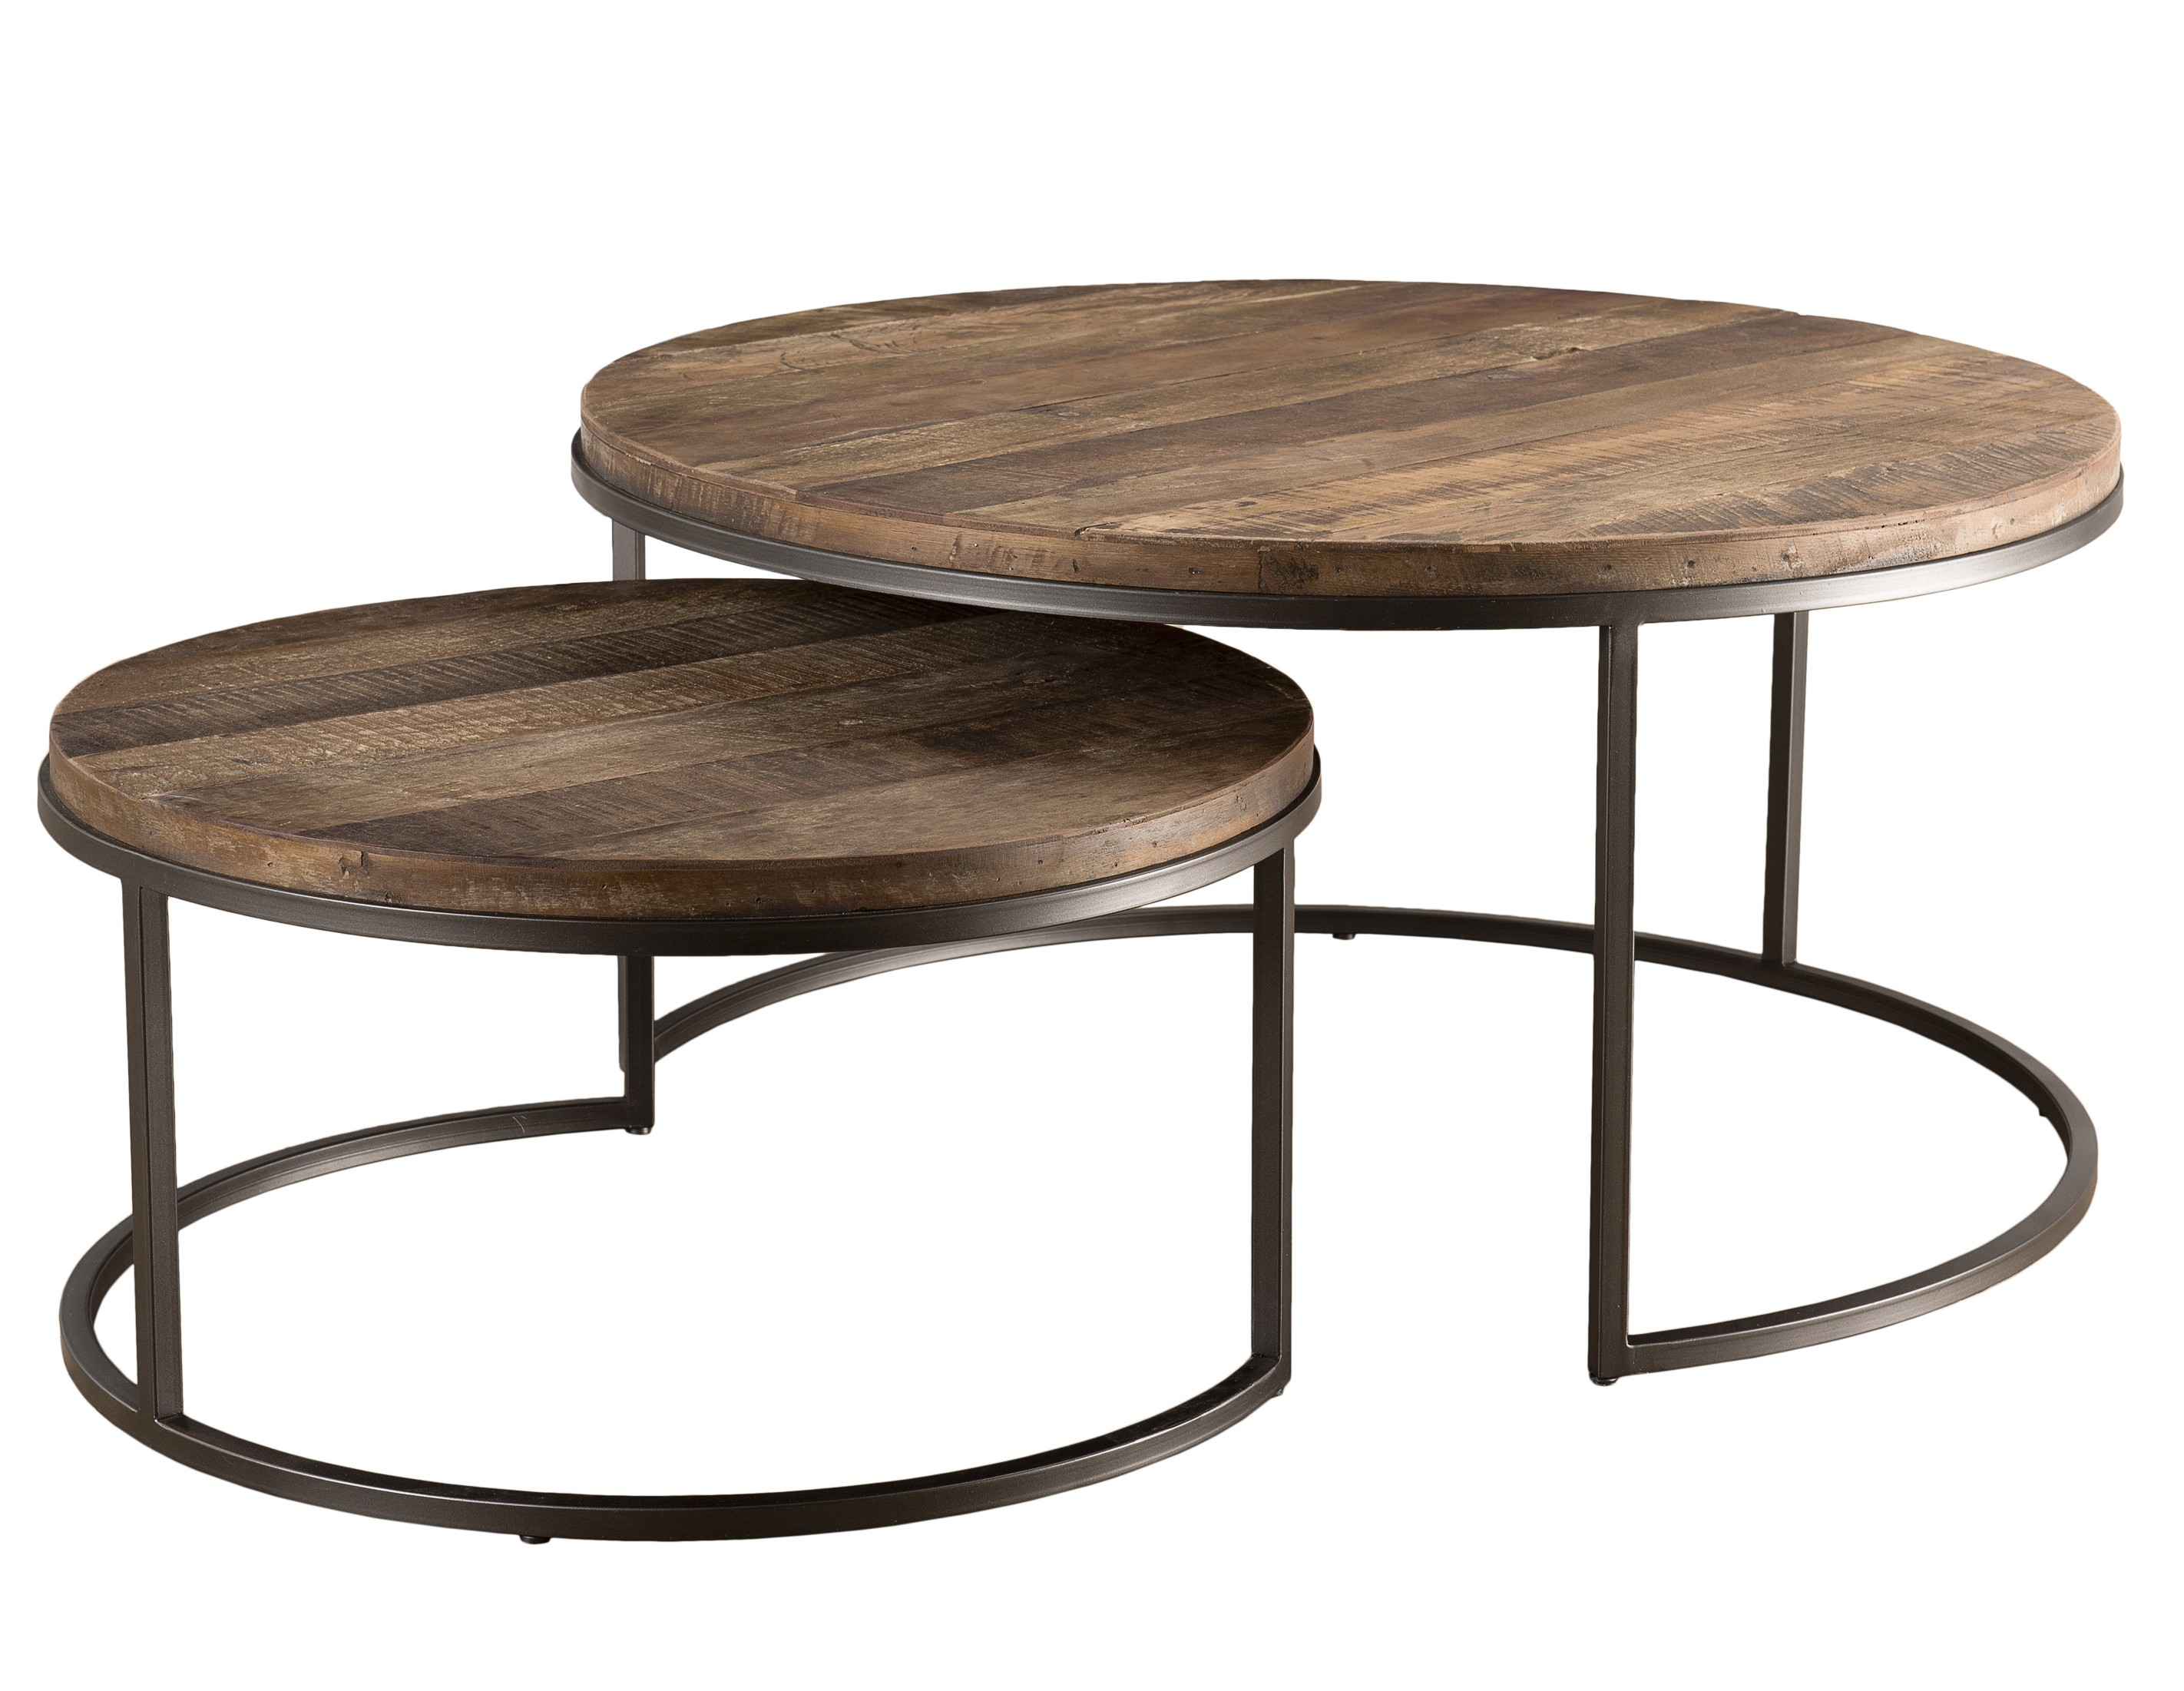 table basse gigogne bois massif acacia et m tal panka. Black Bedroom Furniture Sets. Home Design Ideas